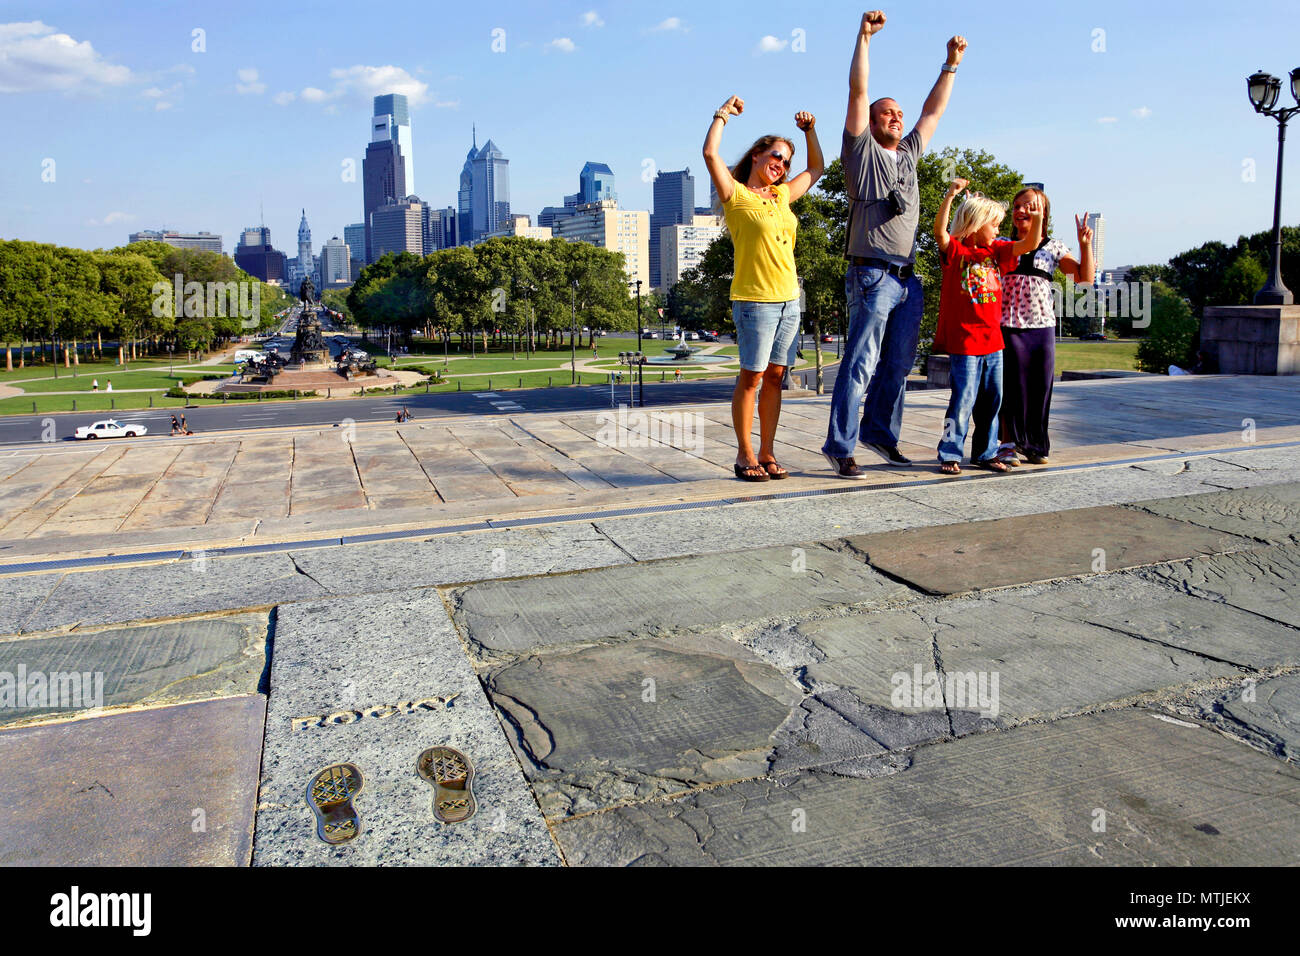 Family posing next to the footprints of Sylvester Stallone at the Rocky Steps - made famous in the movie Rocky Balboa, Philadelphia, Pennsylvania, USA Stock Photo